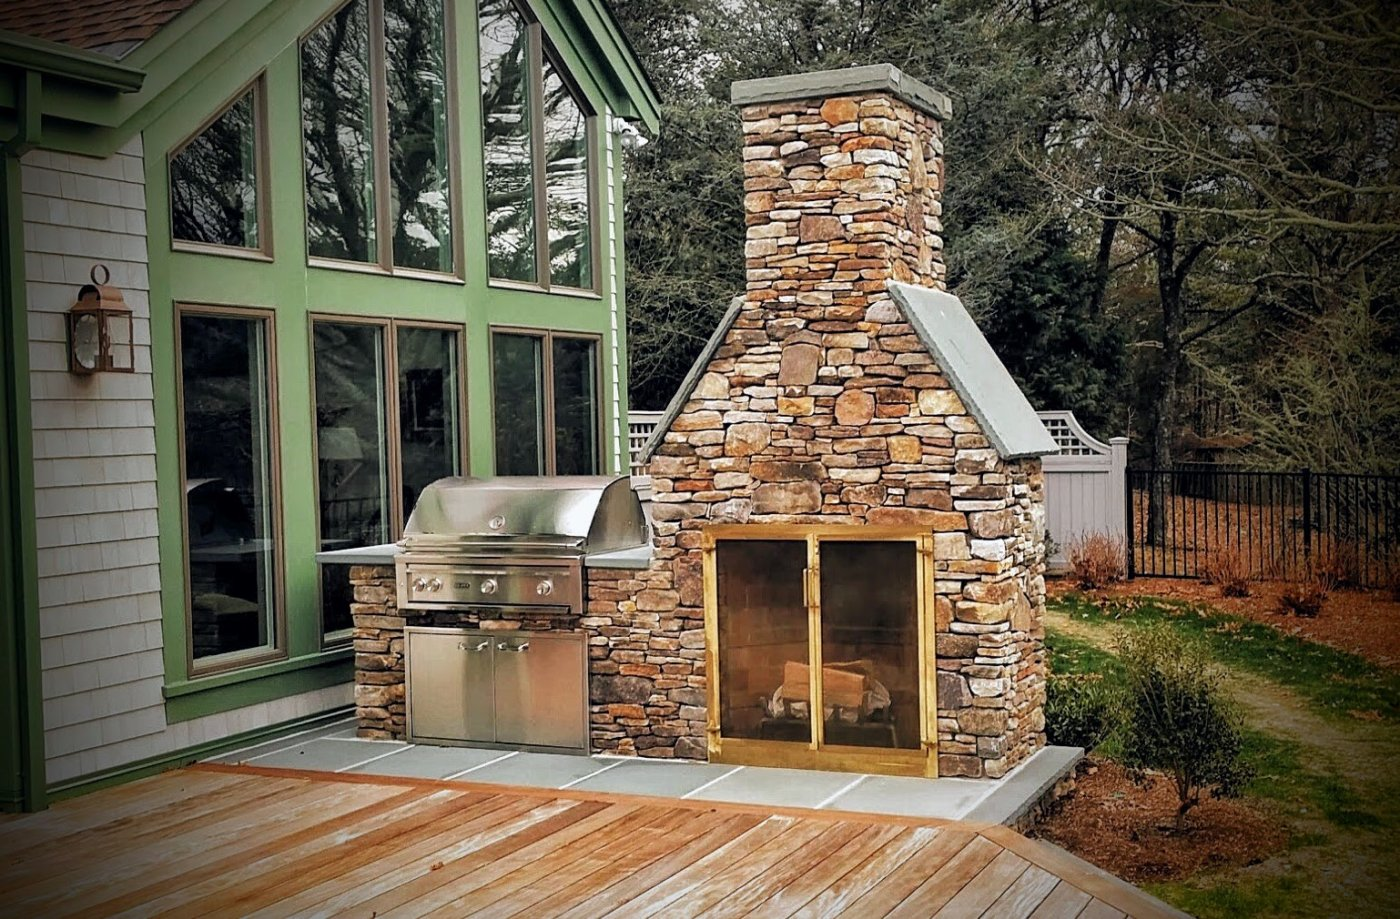 BBQ Fireplace Grill Cape Cod Outdoor Living_Orleans